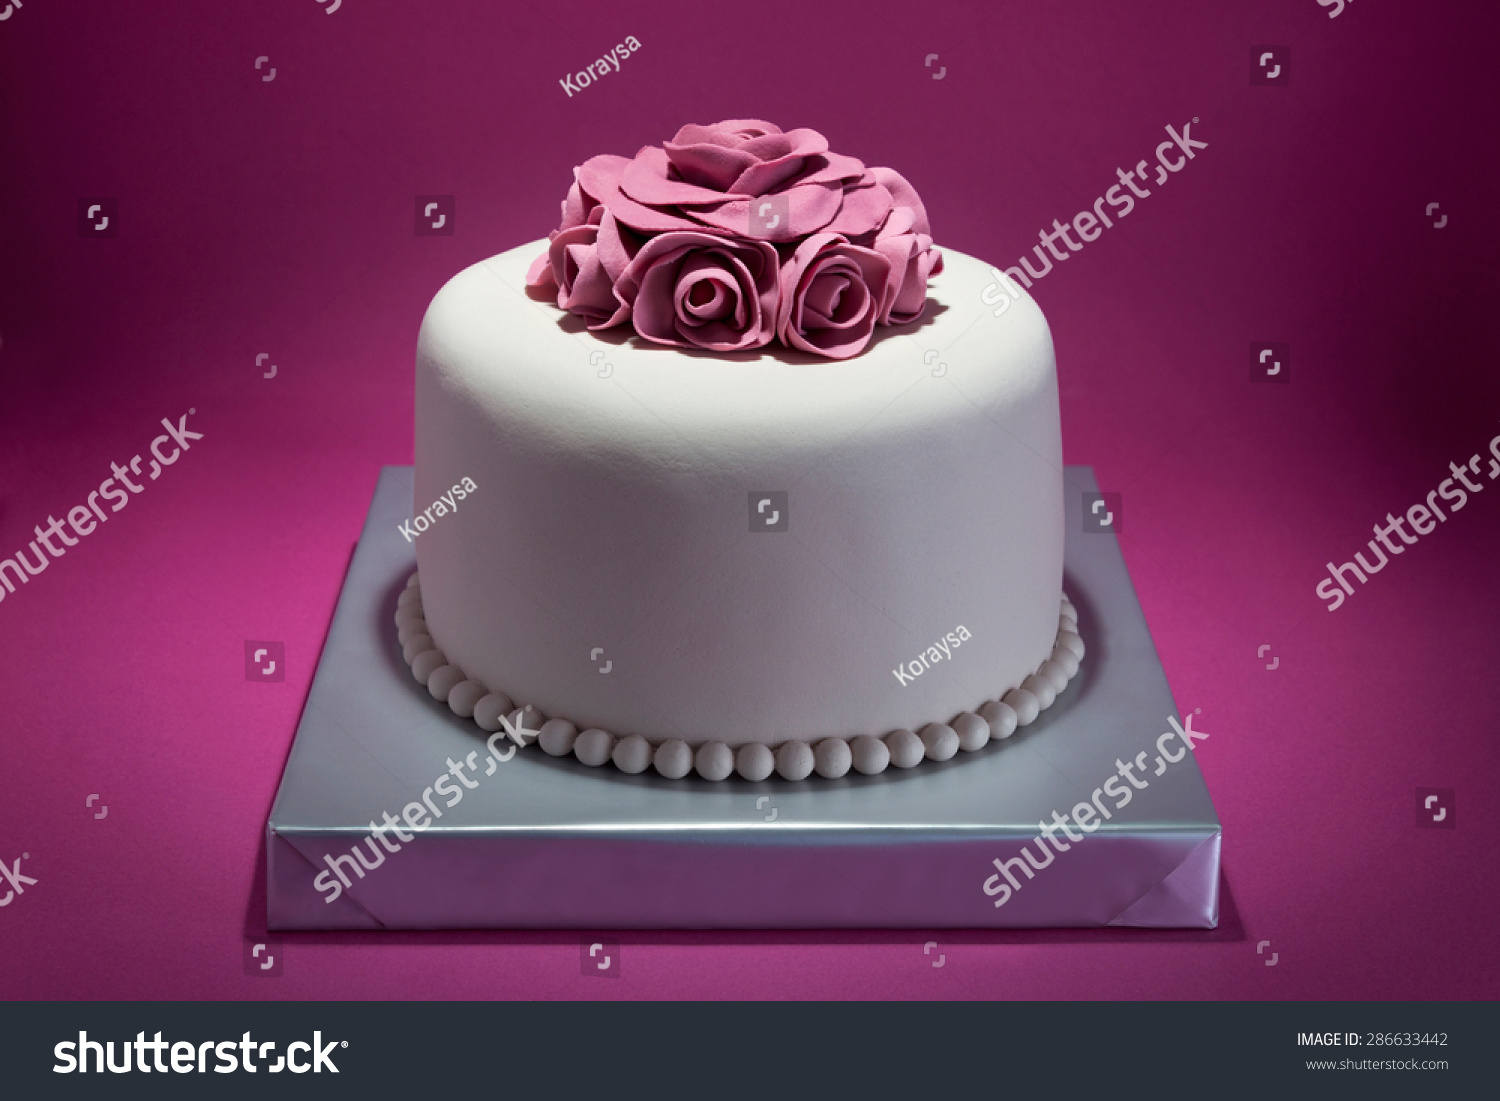 Floral Birthday Cake Stock Photo Edit Now 286633442 Shutterstock